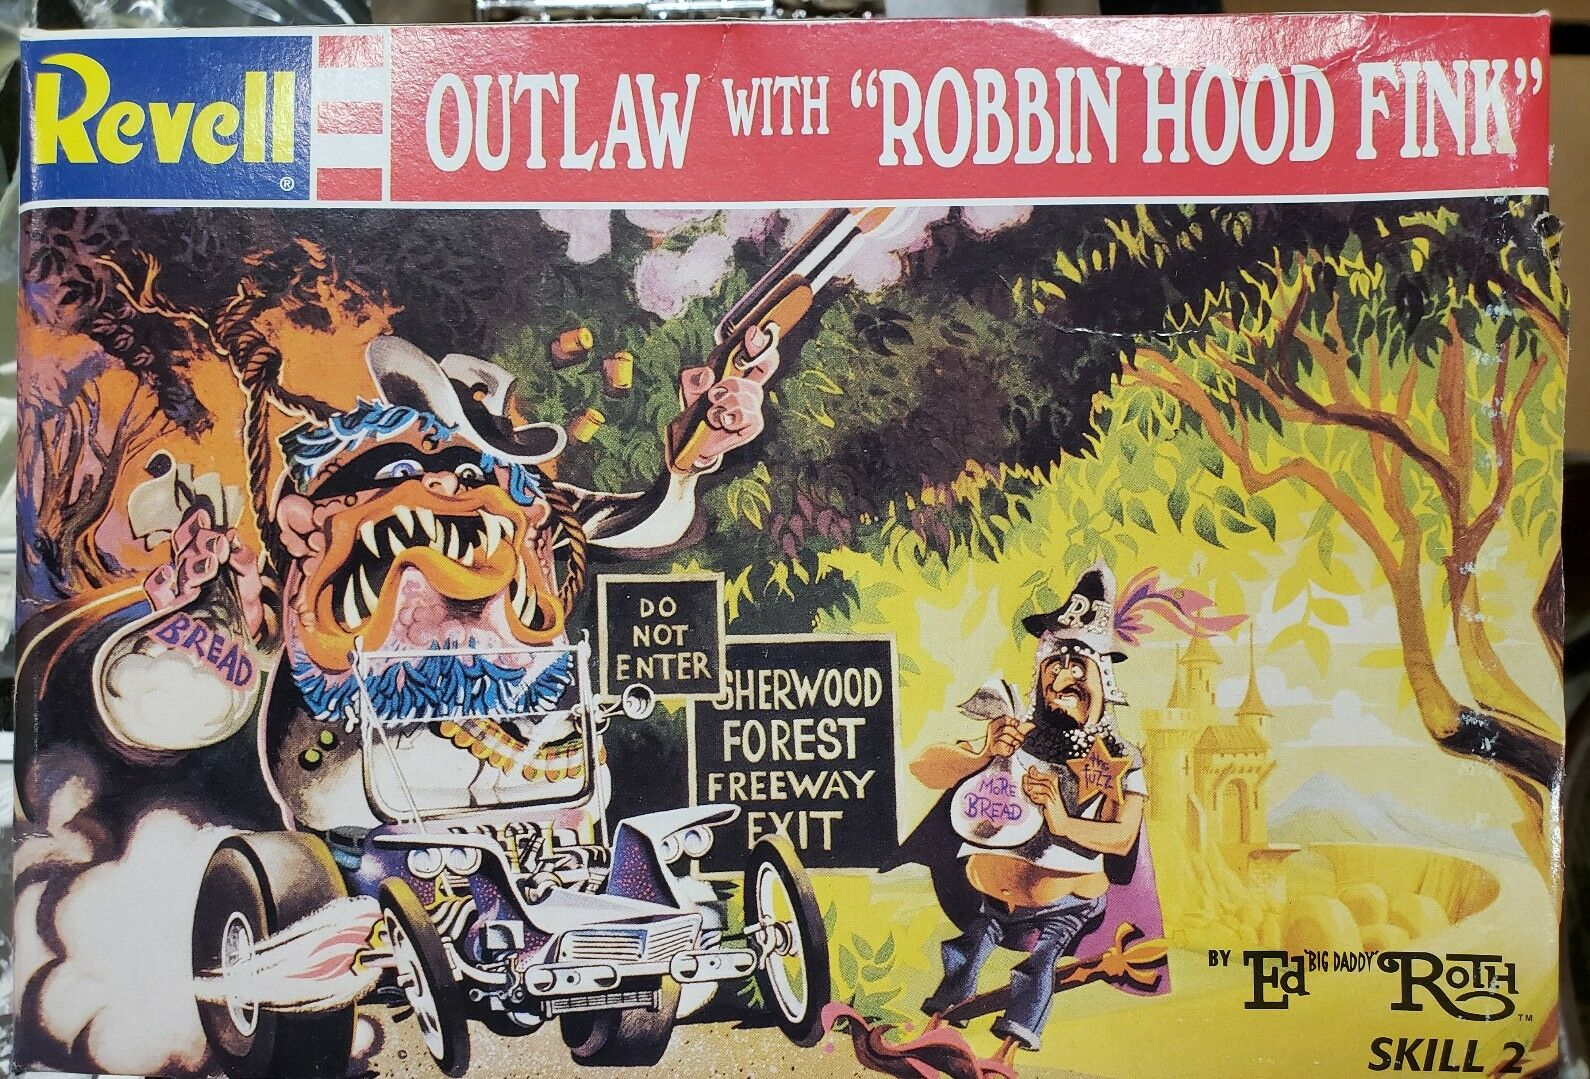 Revell Outlaw with  Robin Hood Fink  by Ed  Big Daddy  redh